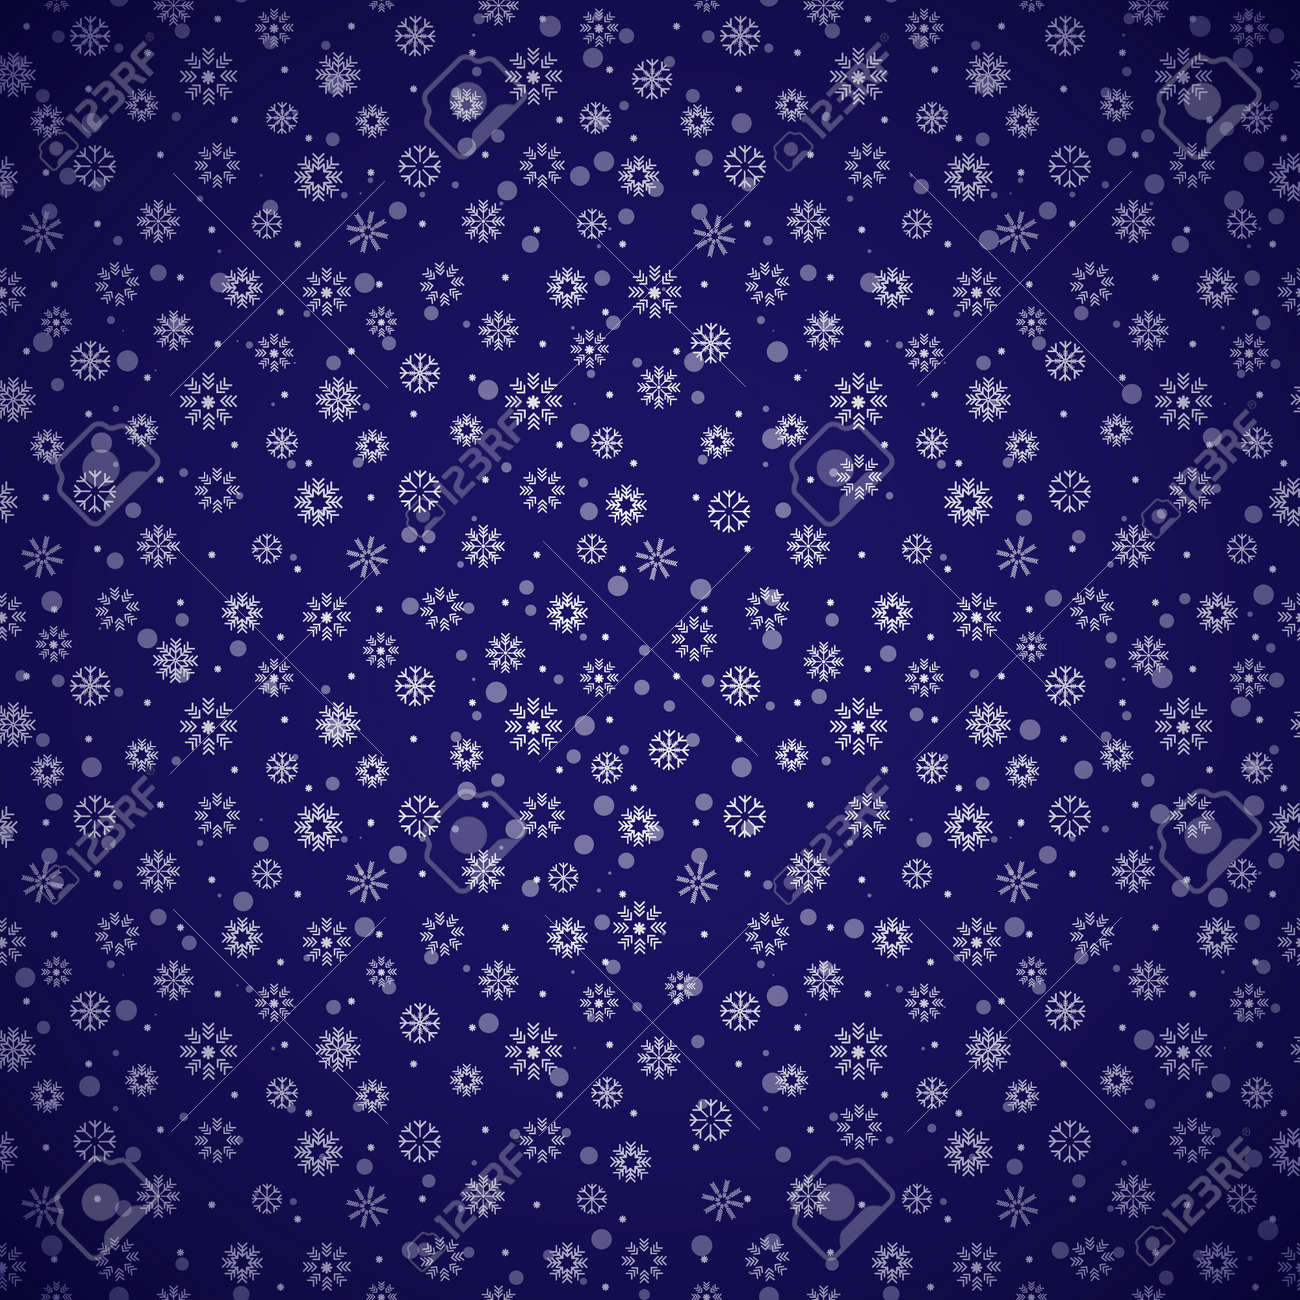 Christmas seamless pattern of snowflakes on a blue background - 159724726